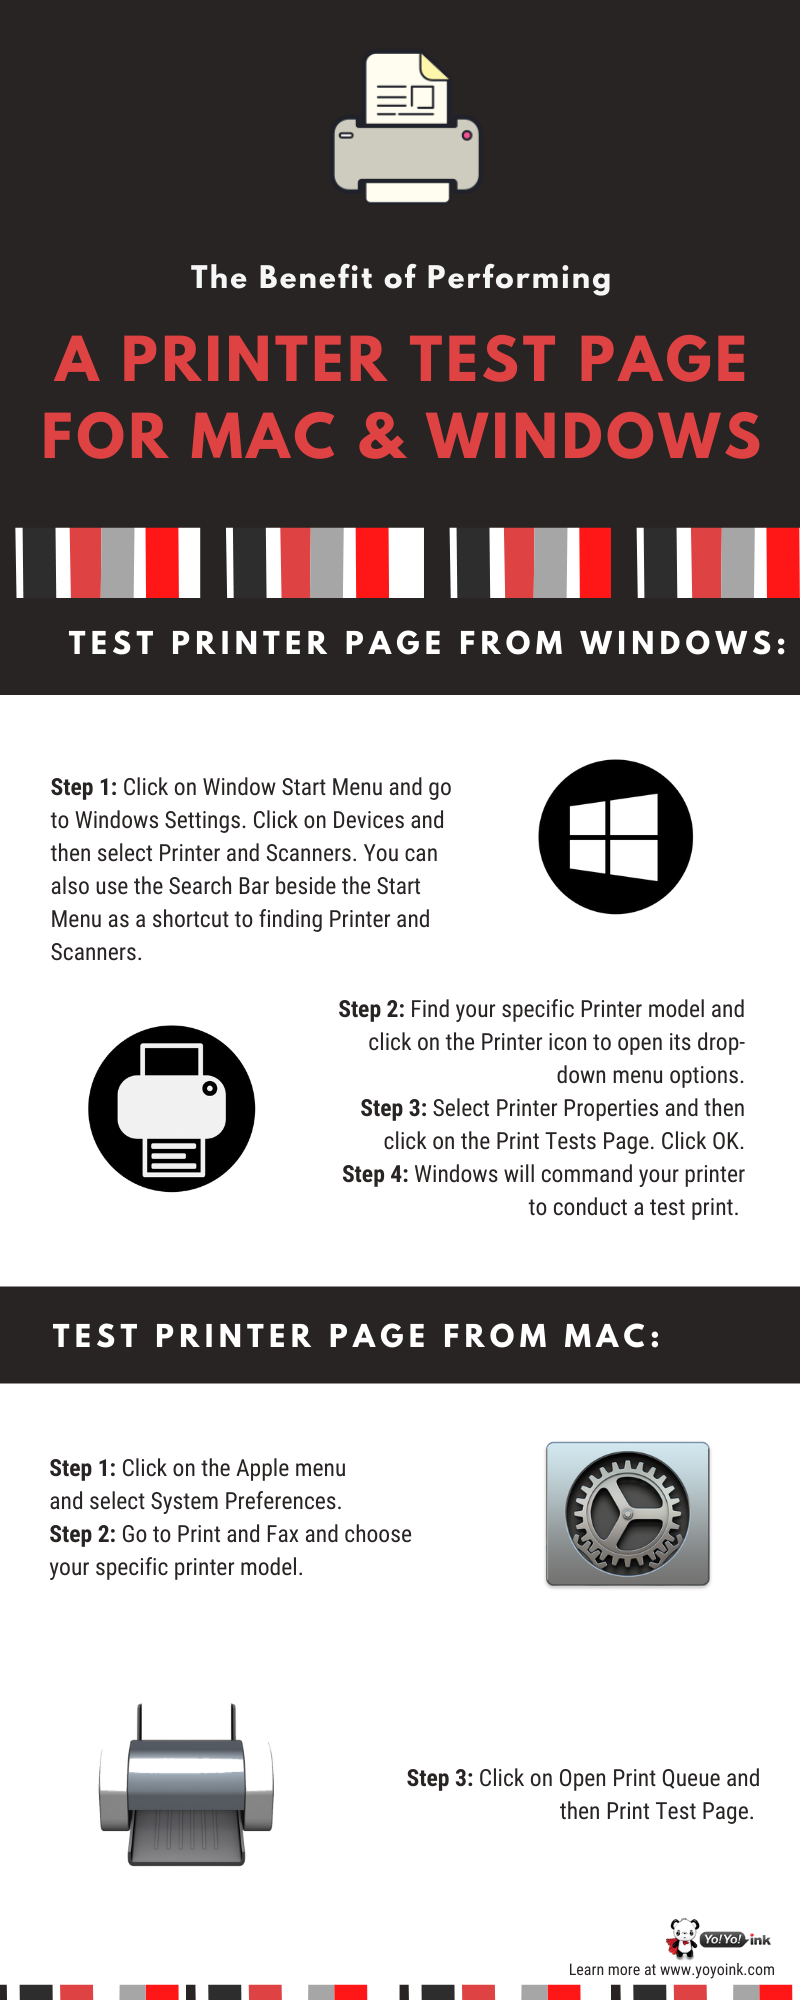 How to do a Printer Test page